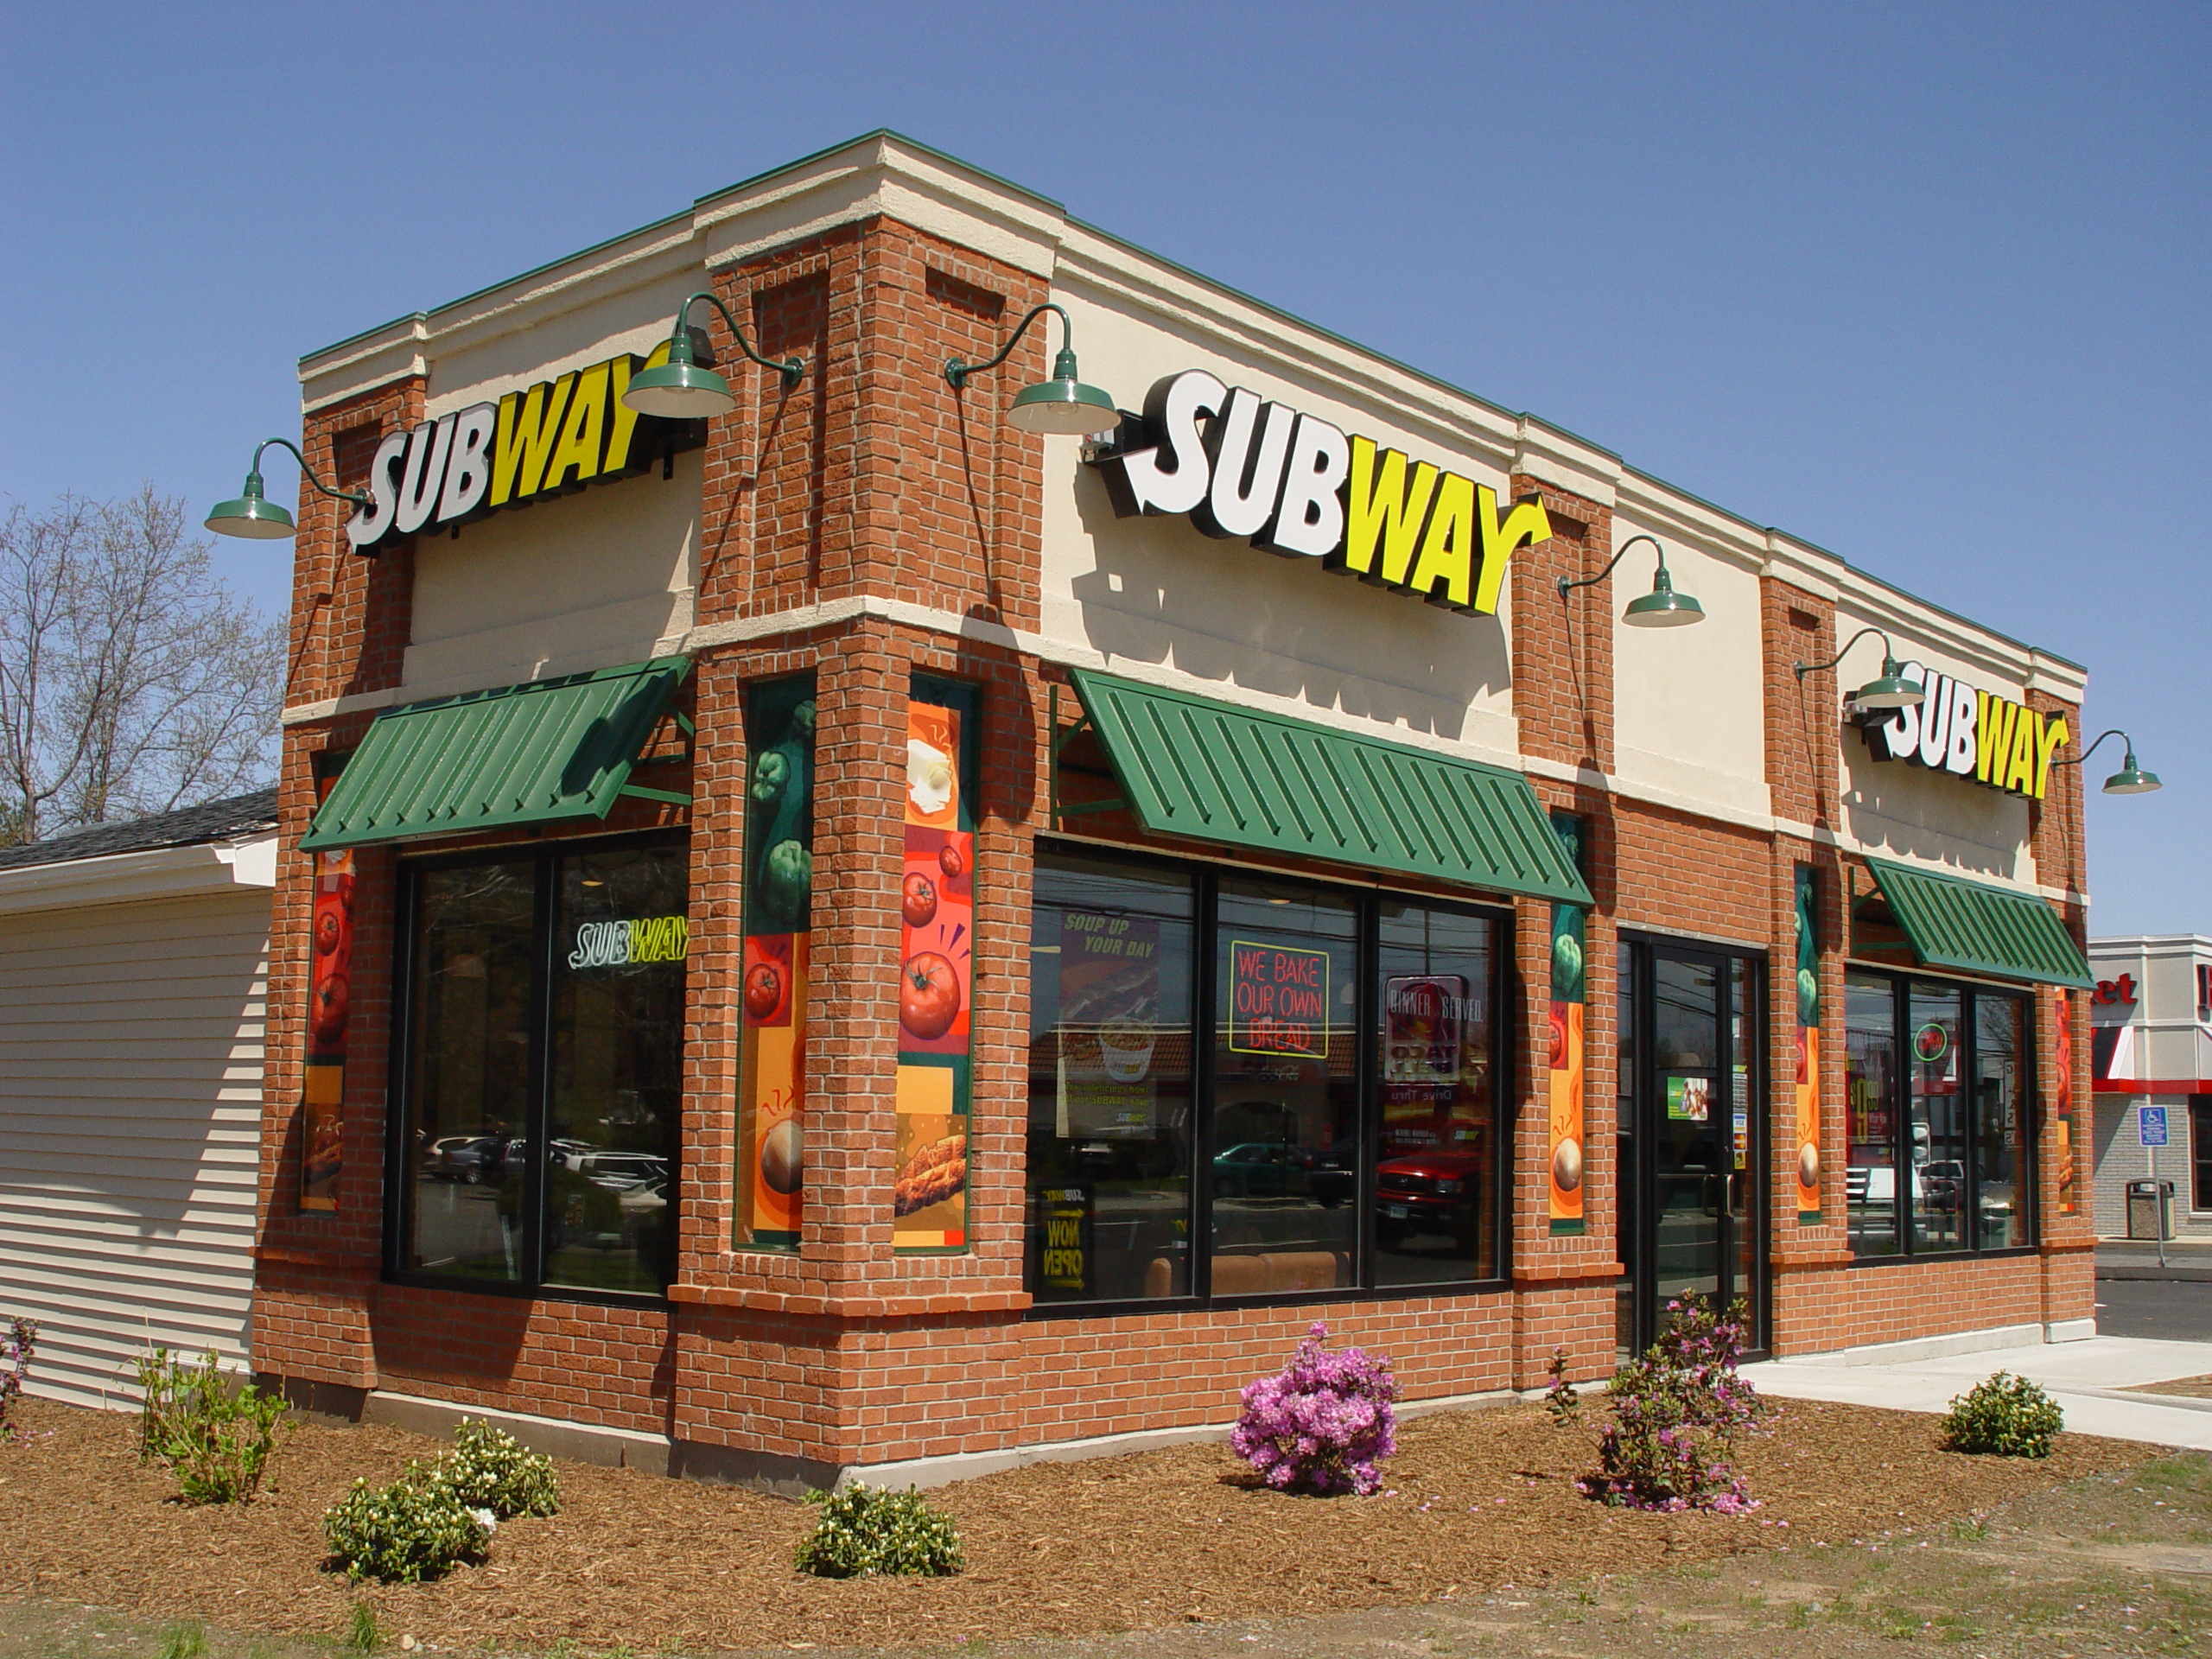 Subway, Enon OH